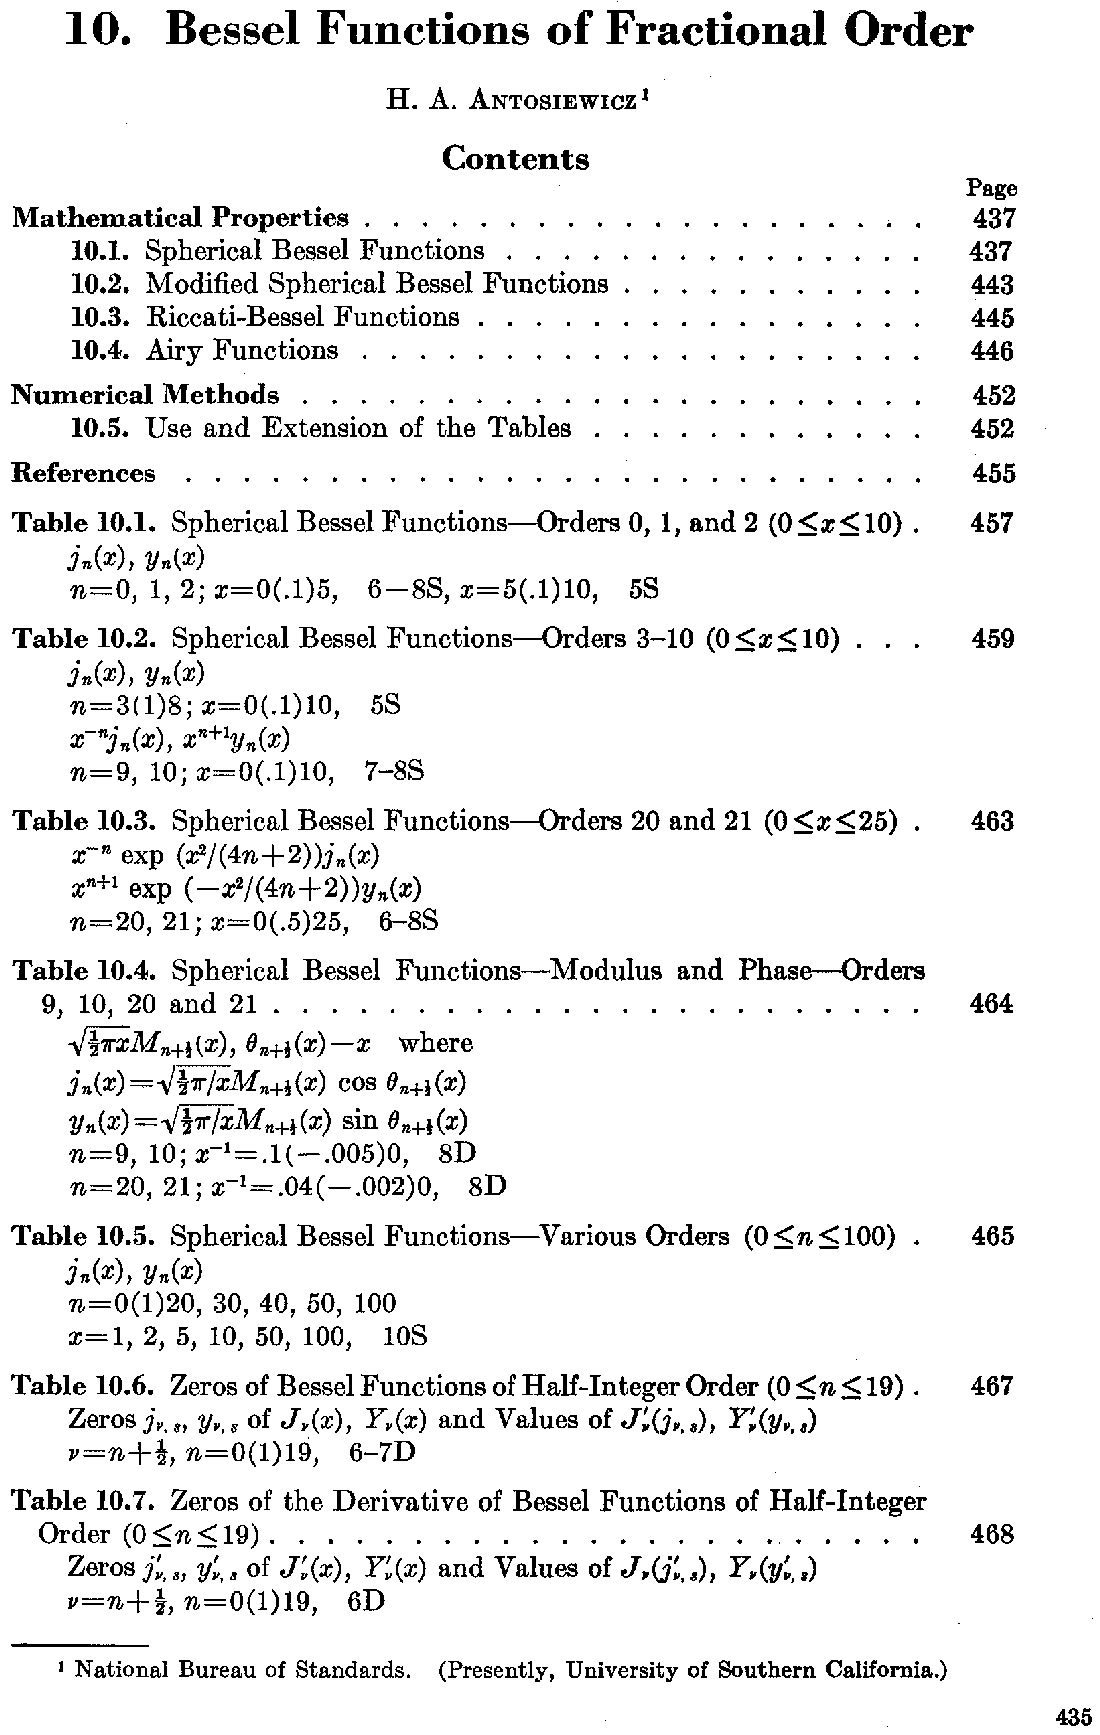 Handbook Of Mathematical Functions Online P 435